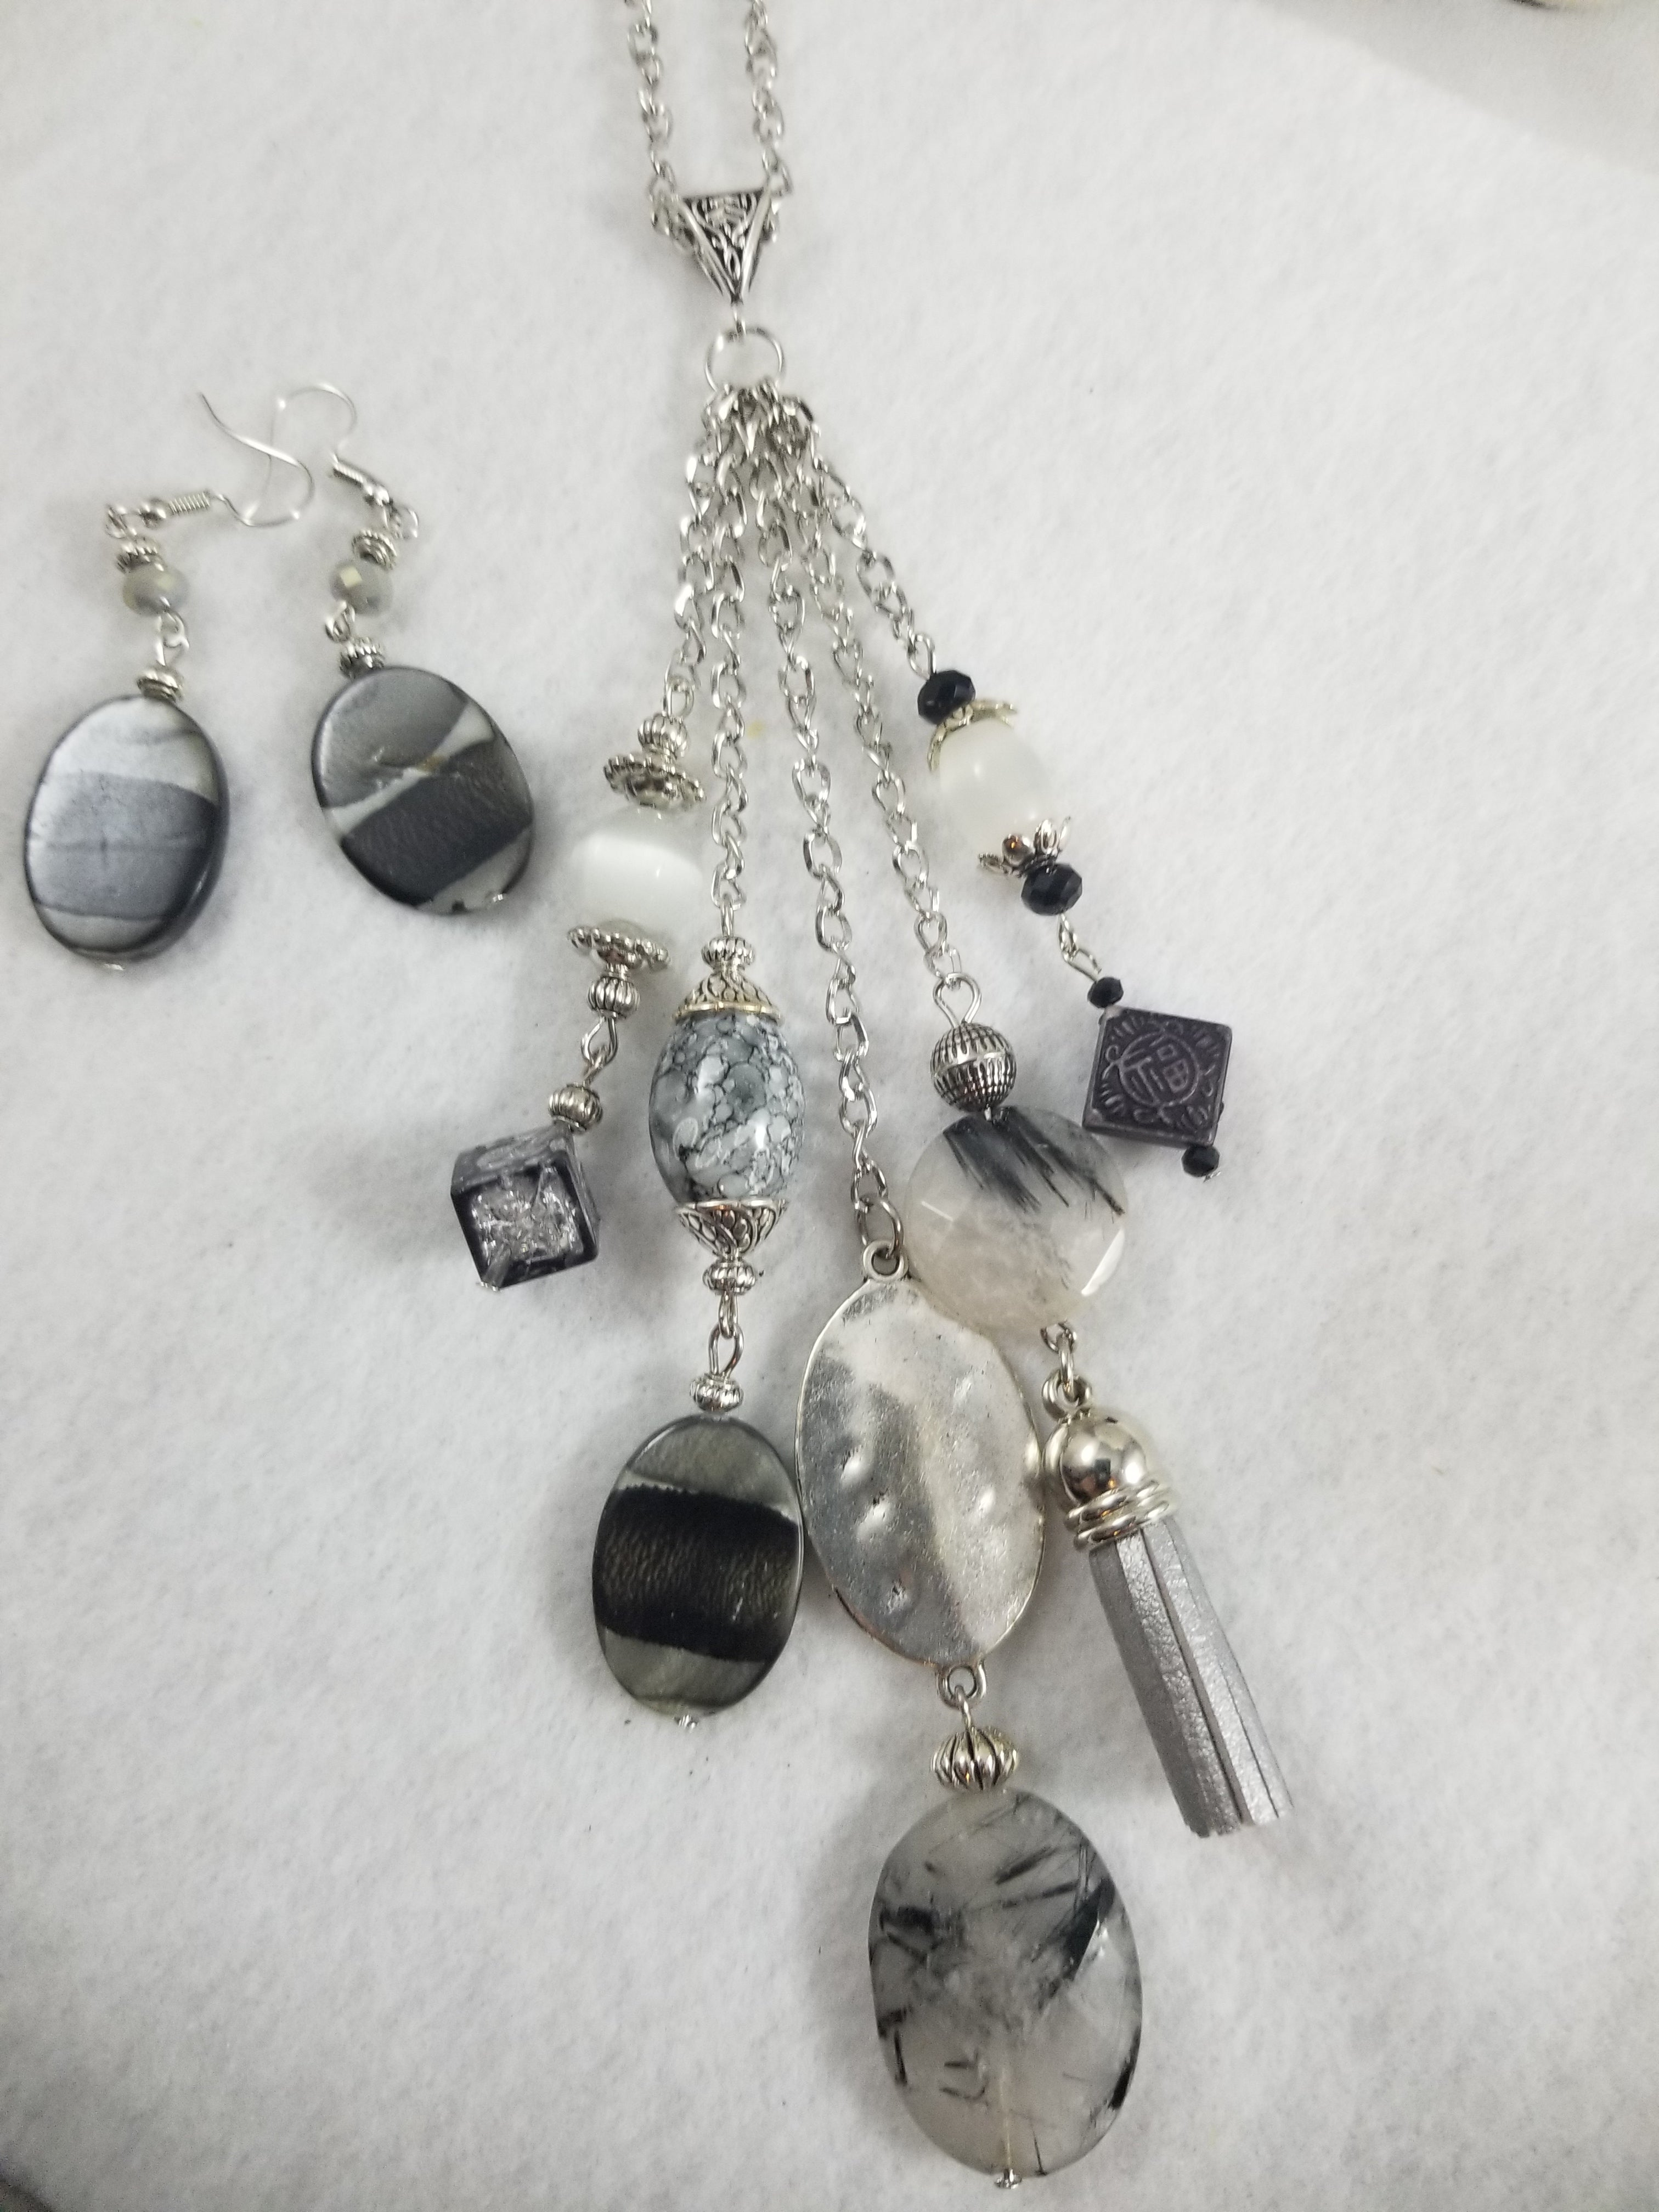 Shades of Gray Necklace with Earrings